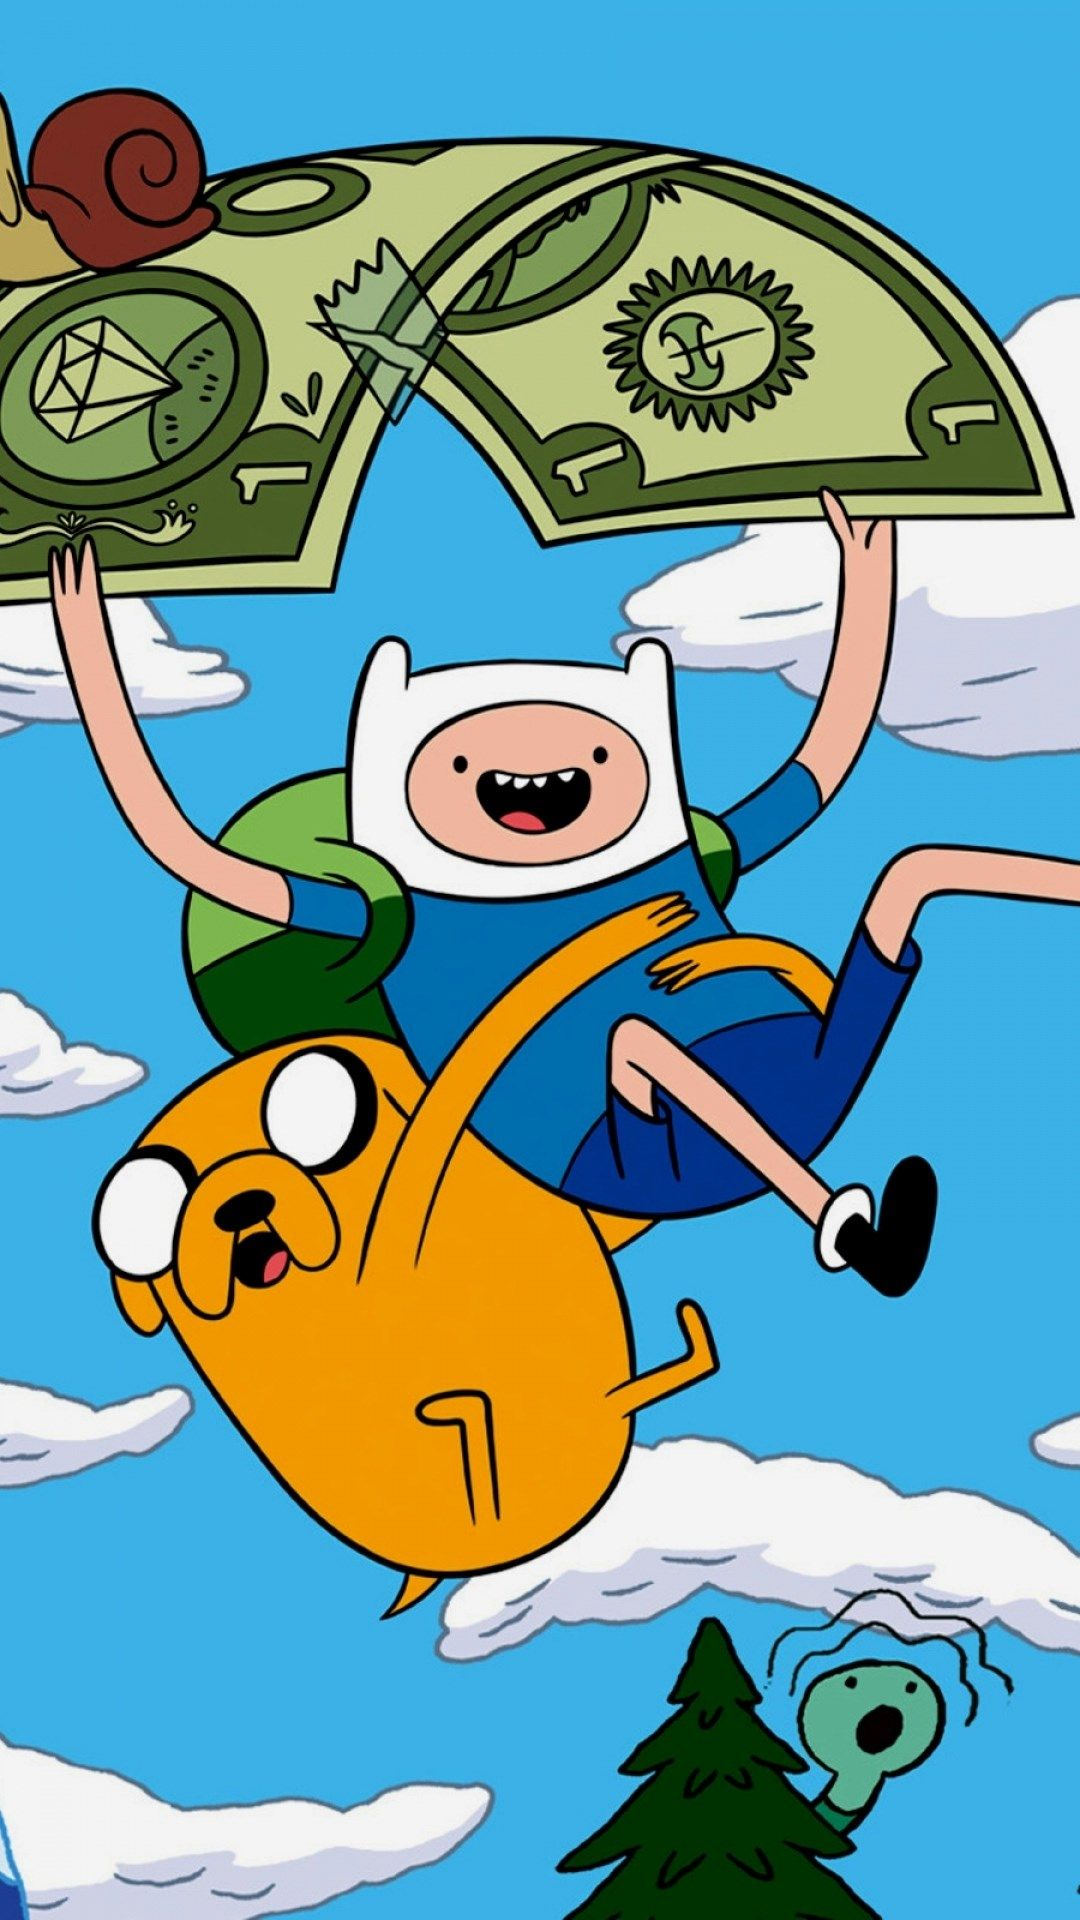 Adventure Time Wallpaper Iphone - Adventure Time Wallpaper Hd Android , HD Wallpaper & Backgrounds